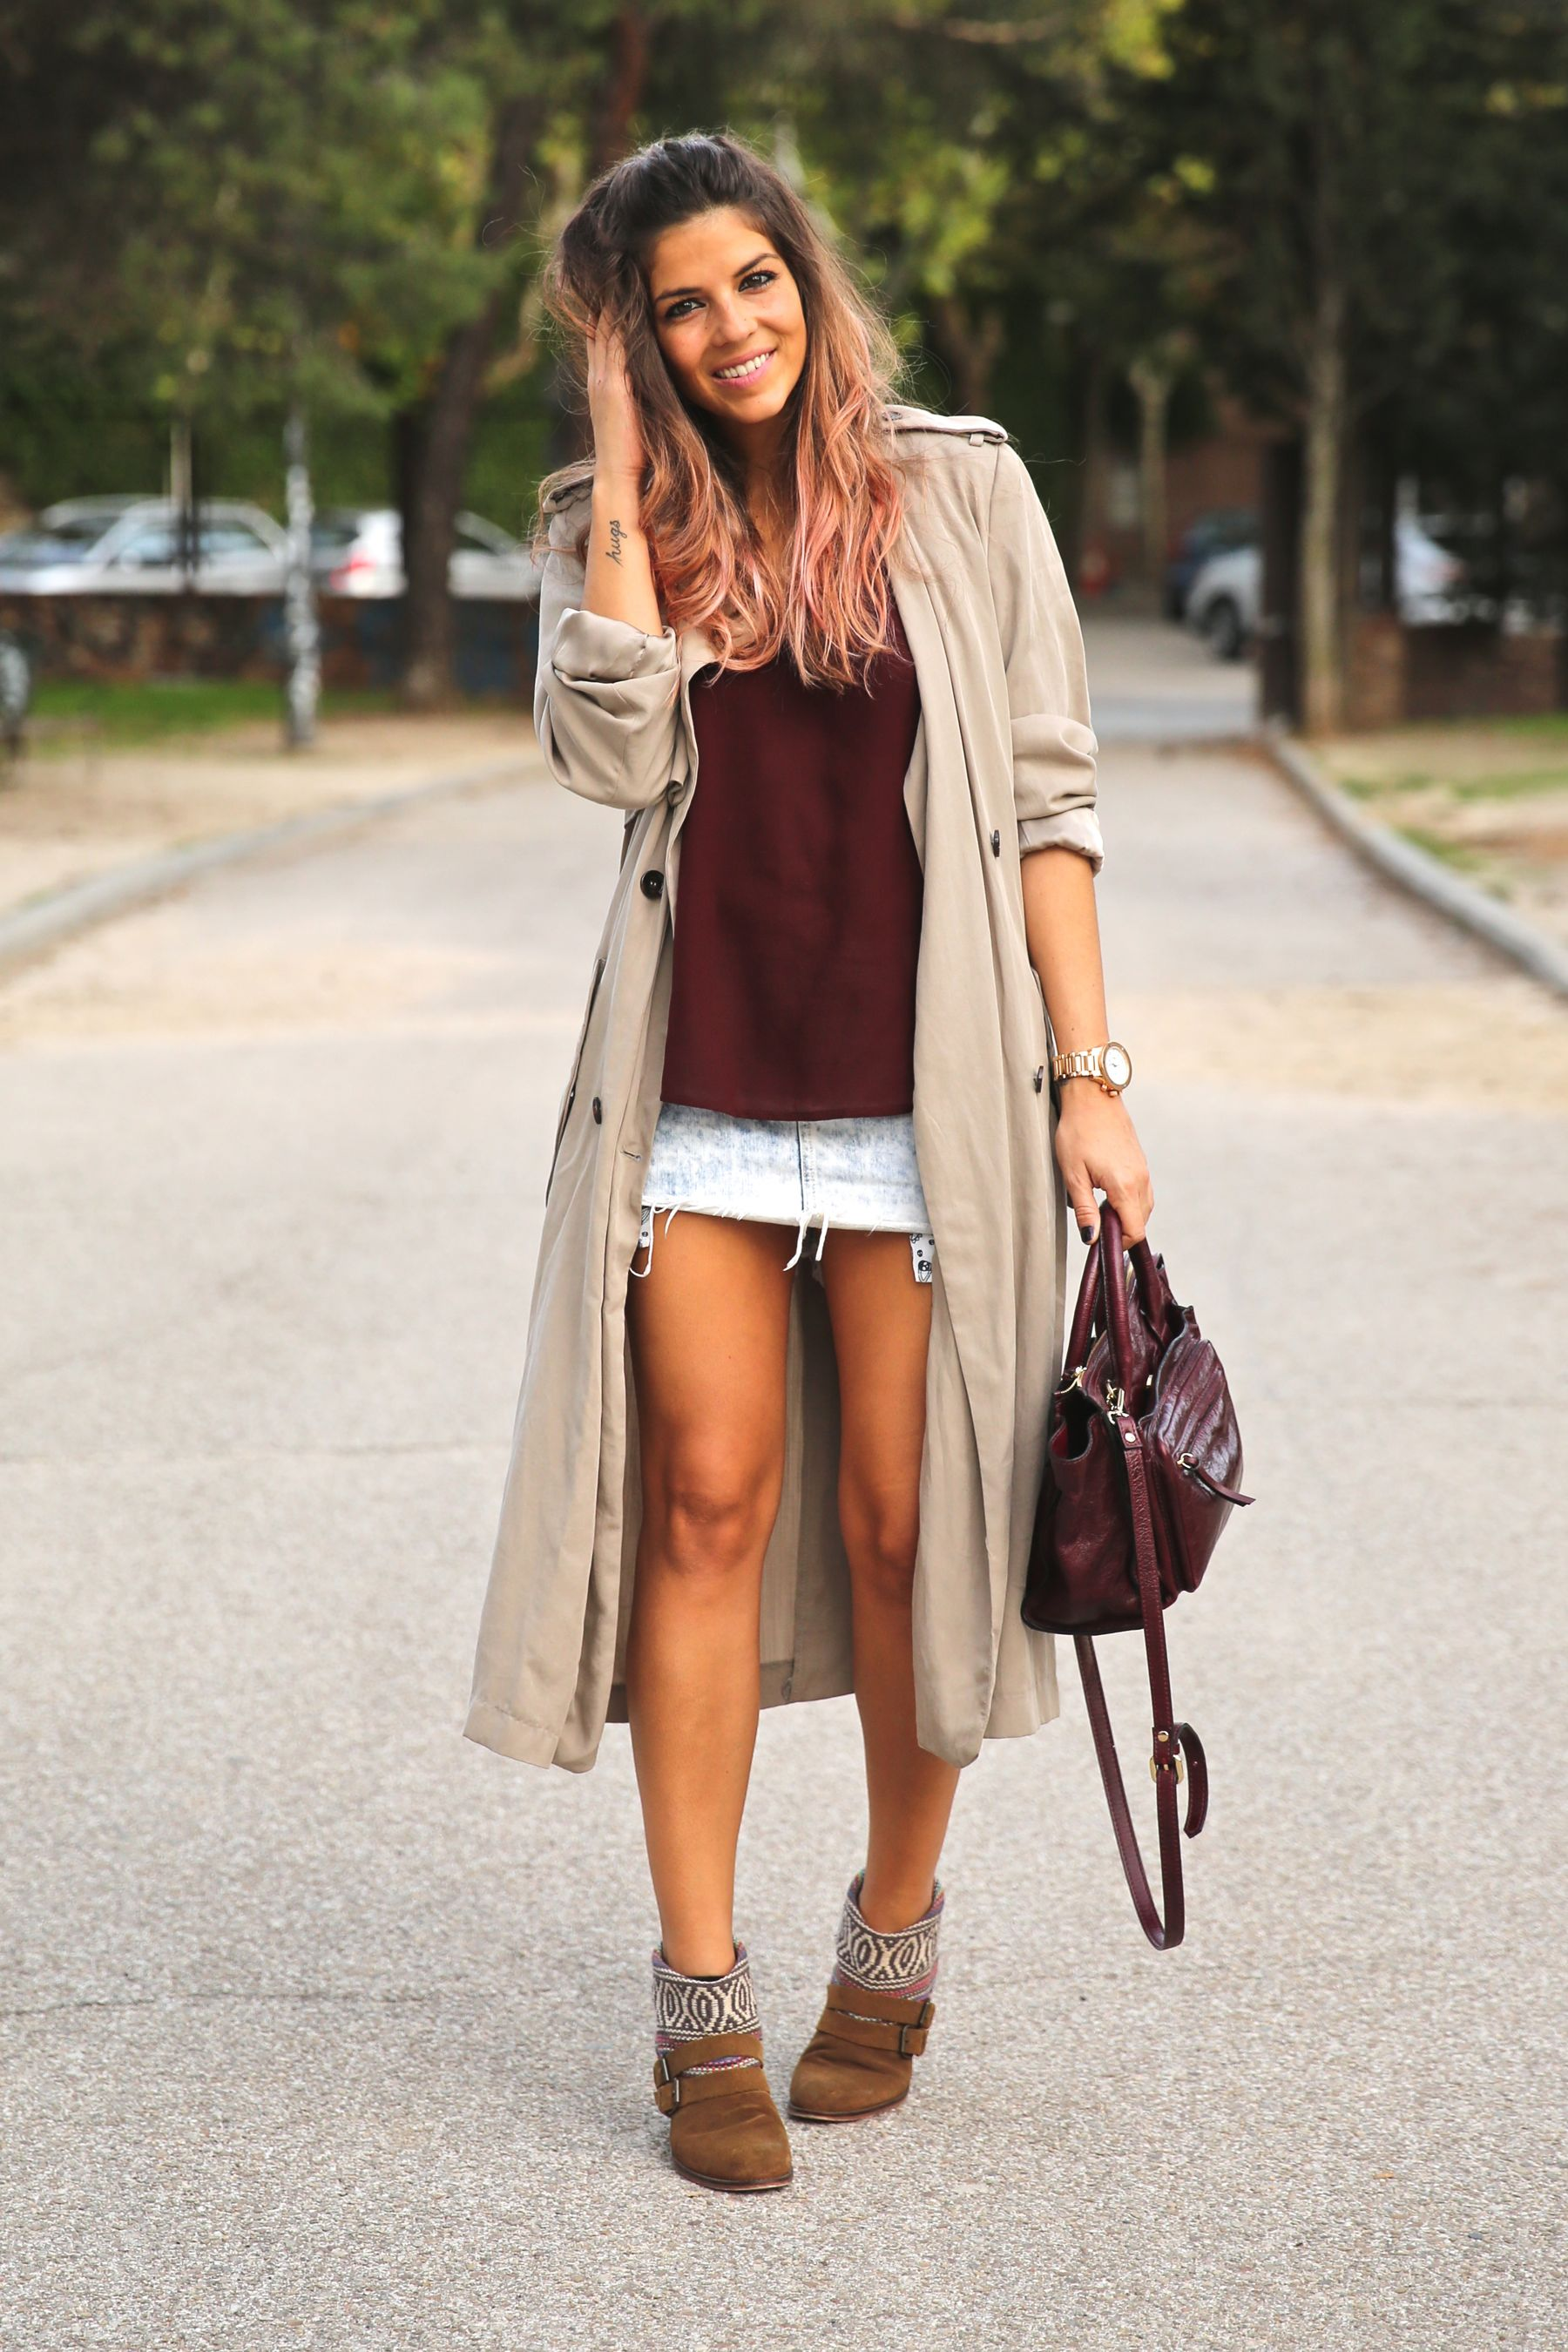 trendy_taste-look-outfit-street_style-ootd-blog-blogger-fashion_spain-moda_españa-boho-hippie-gabardina-botines_camperos-booties-gabardina-raincoat-burgundy_bag-zara-10